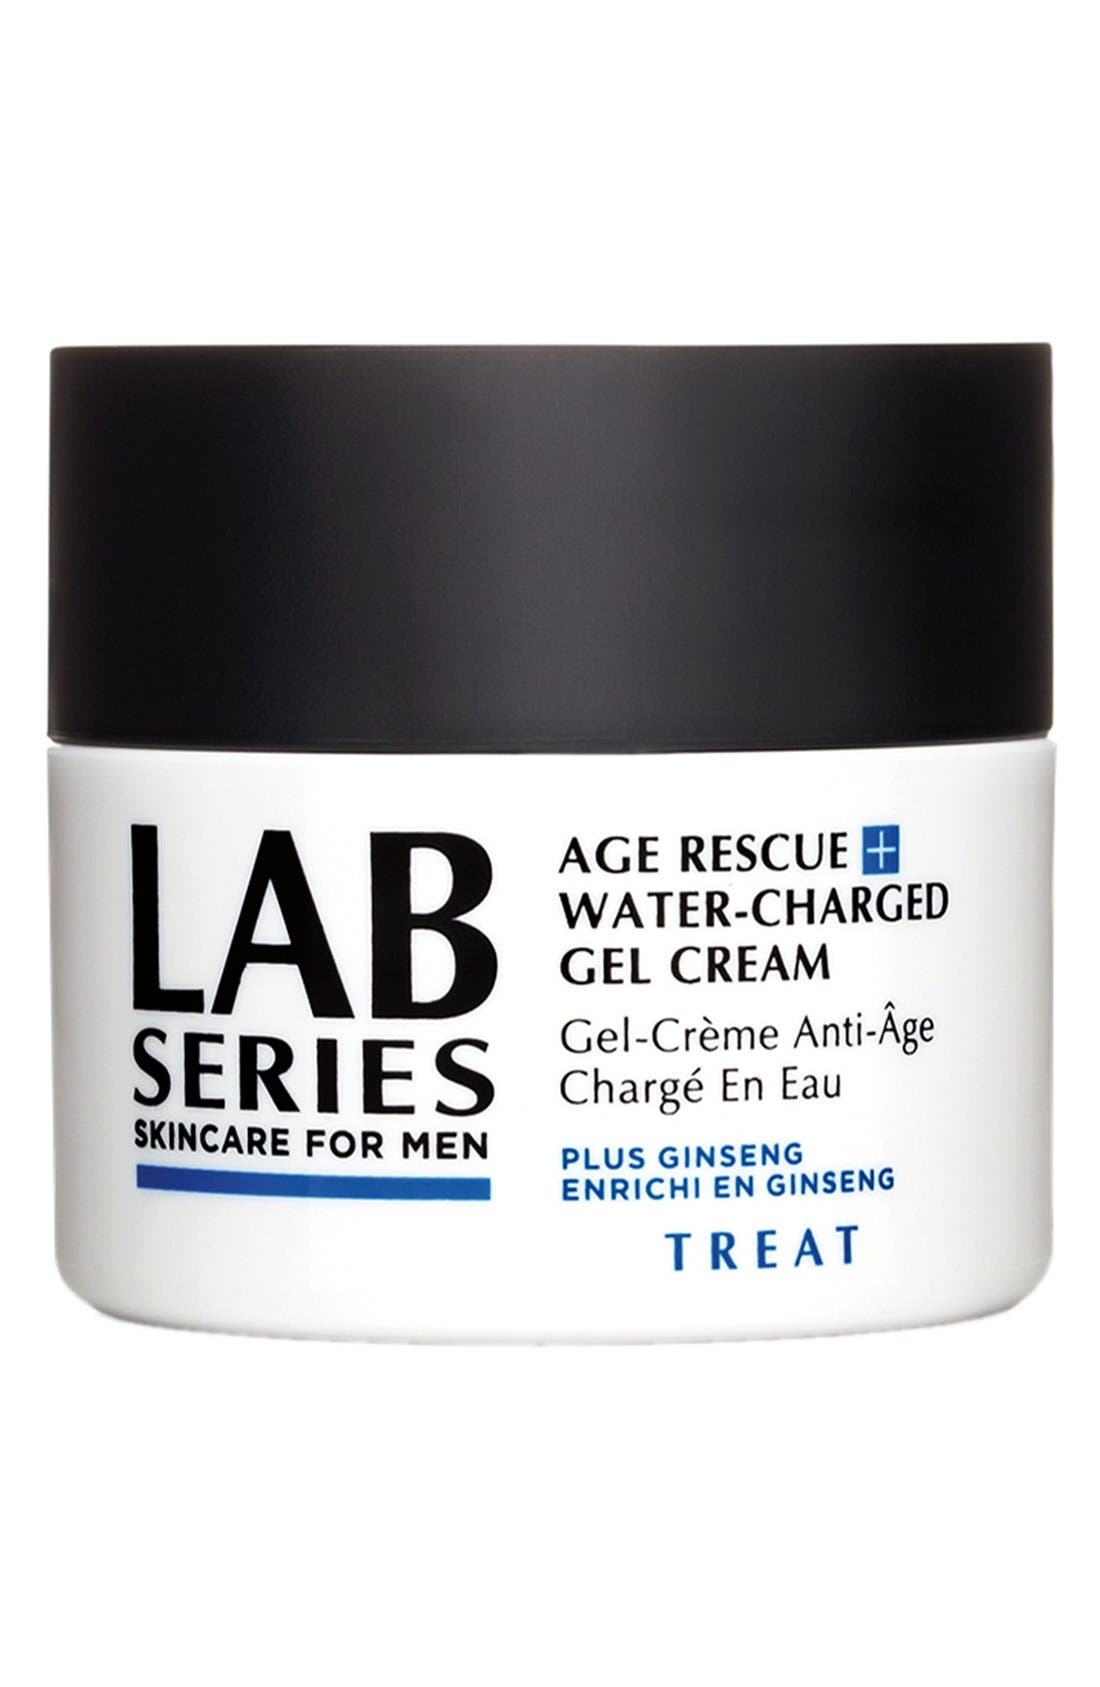 Age Rescue + Water-Charged Gel Cream,                         Main,                         color, 000